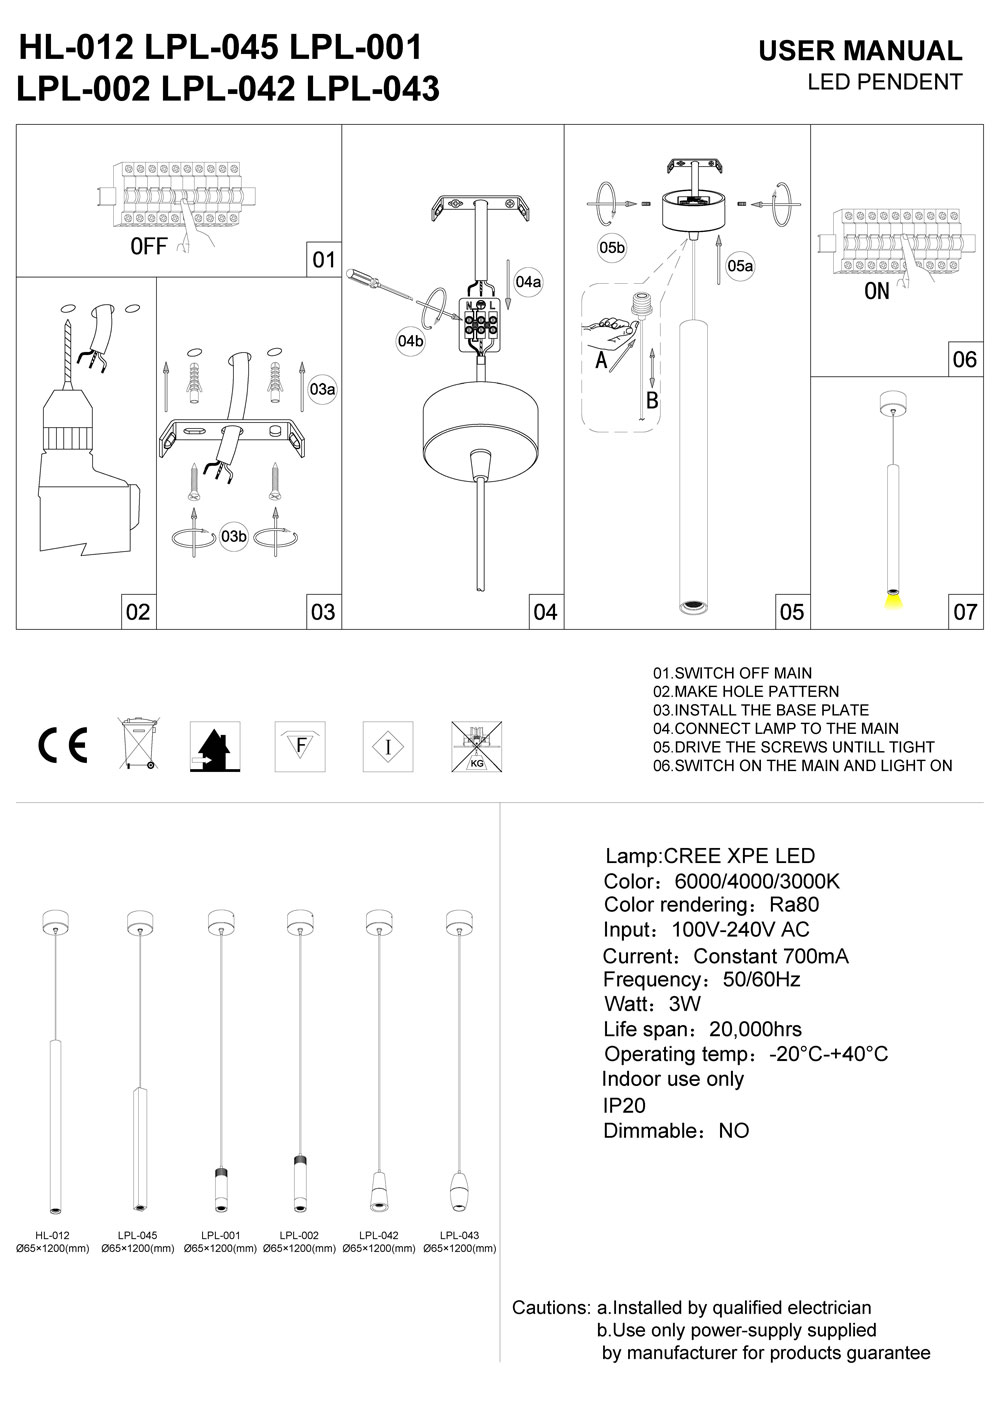 HL-012-LPL-045-LPL-001 LED pendant light installation guide